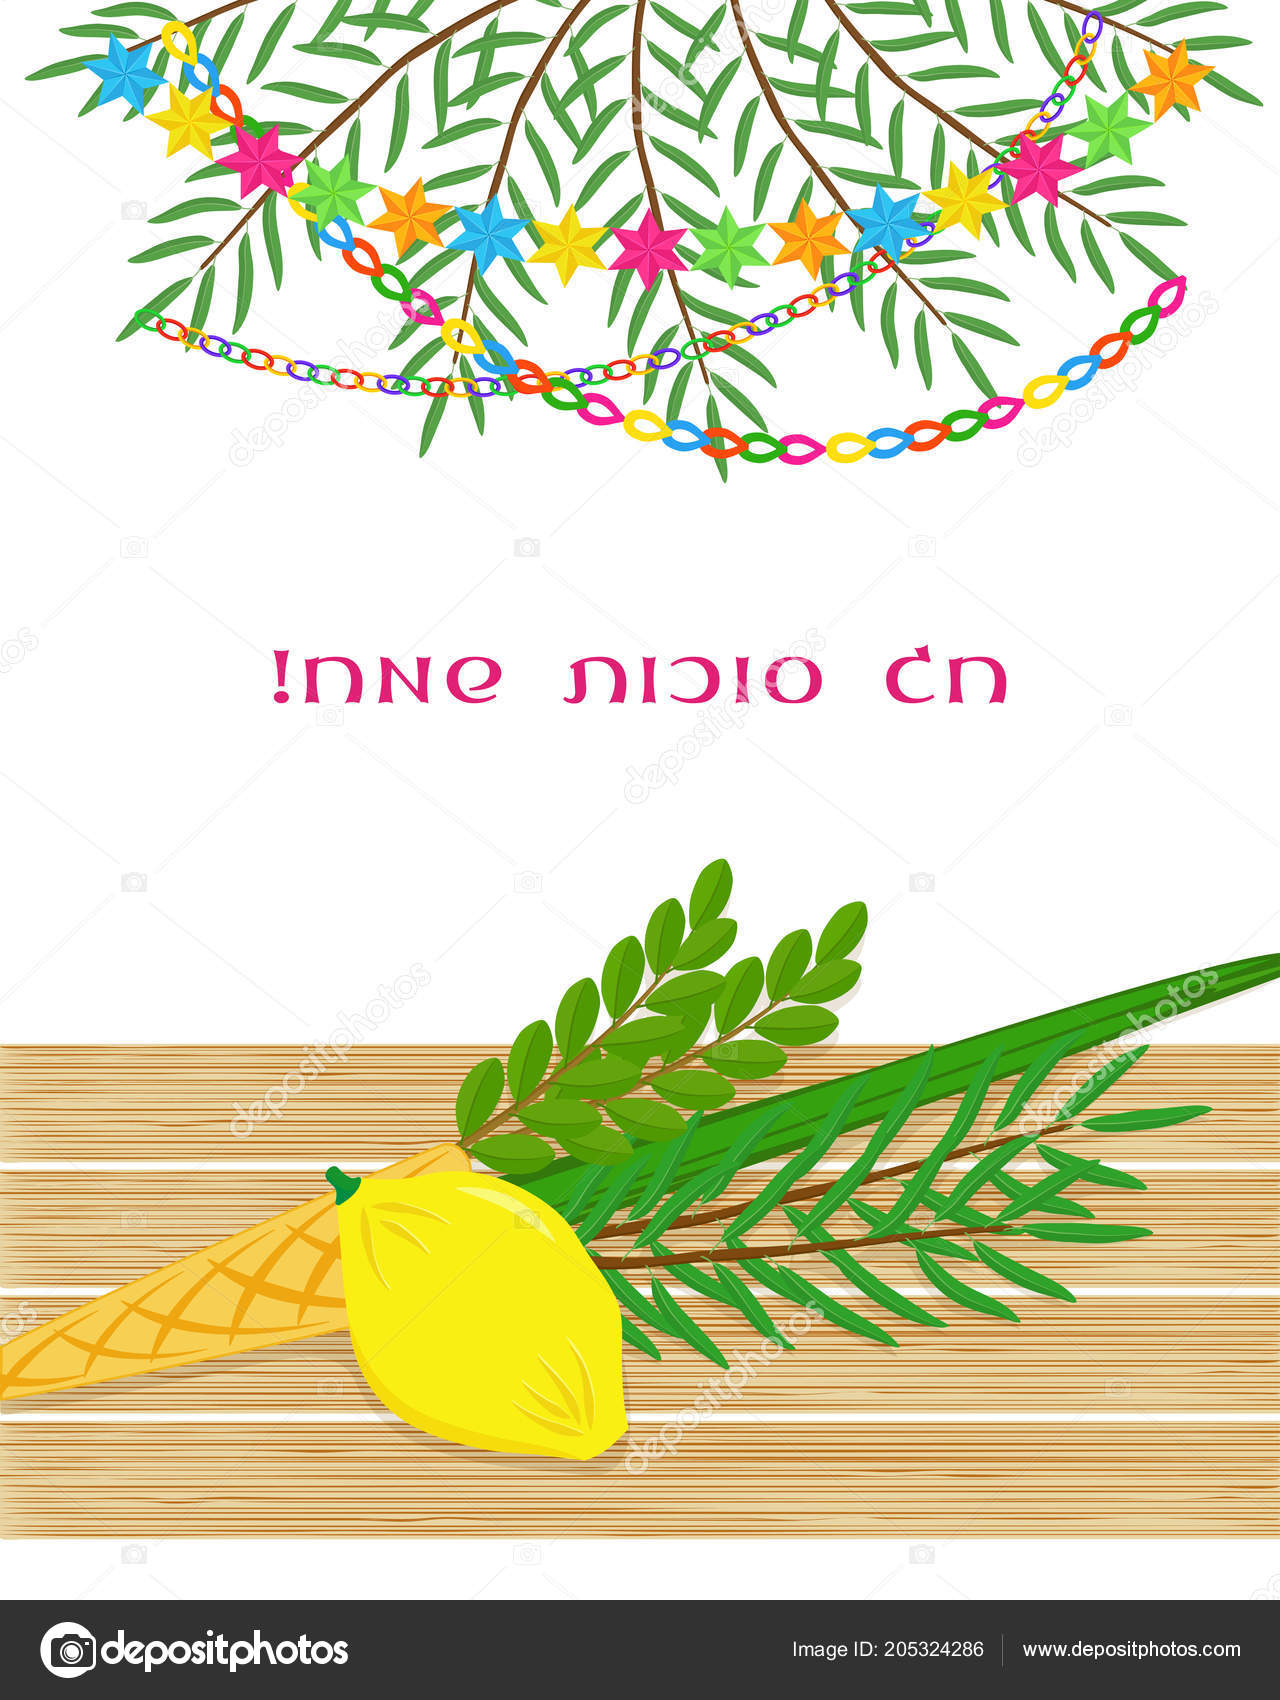 Four Species Etrog Lulav Hadass Aravah Symbols Jewish Holiday Sukkot